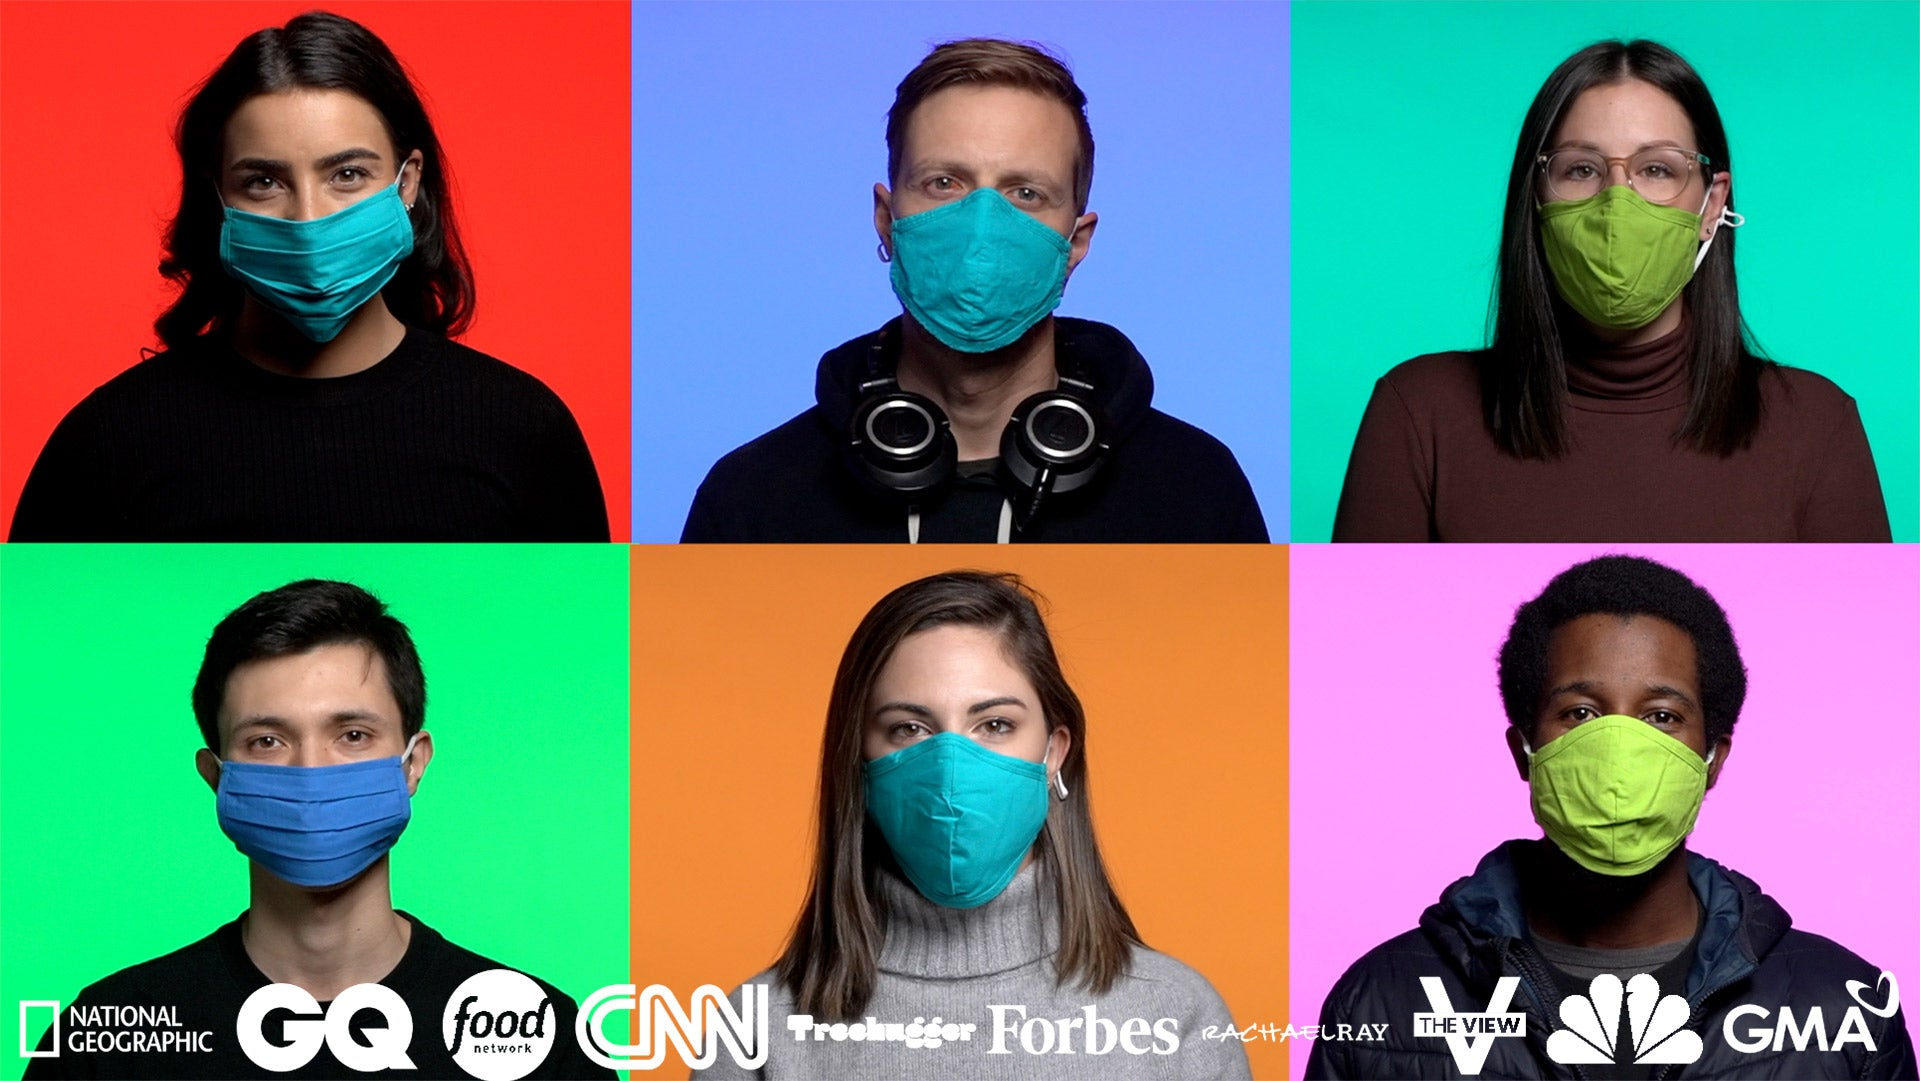 6 people with masks on